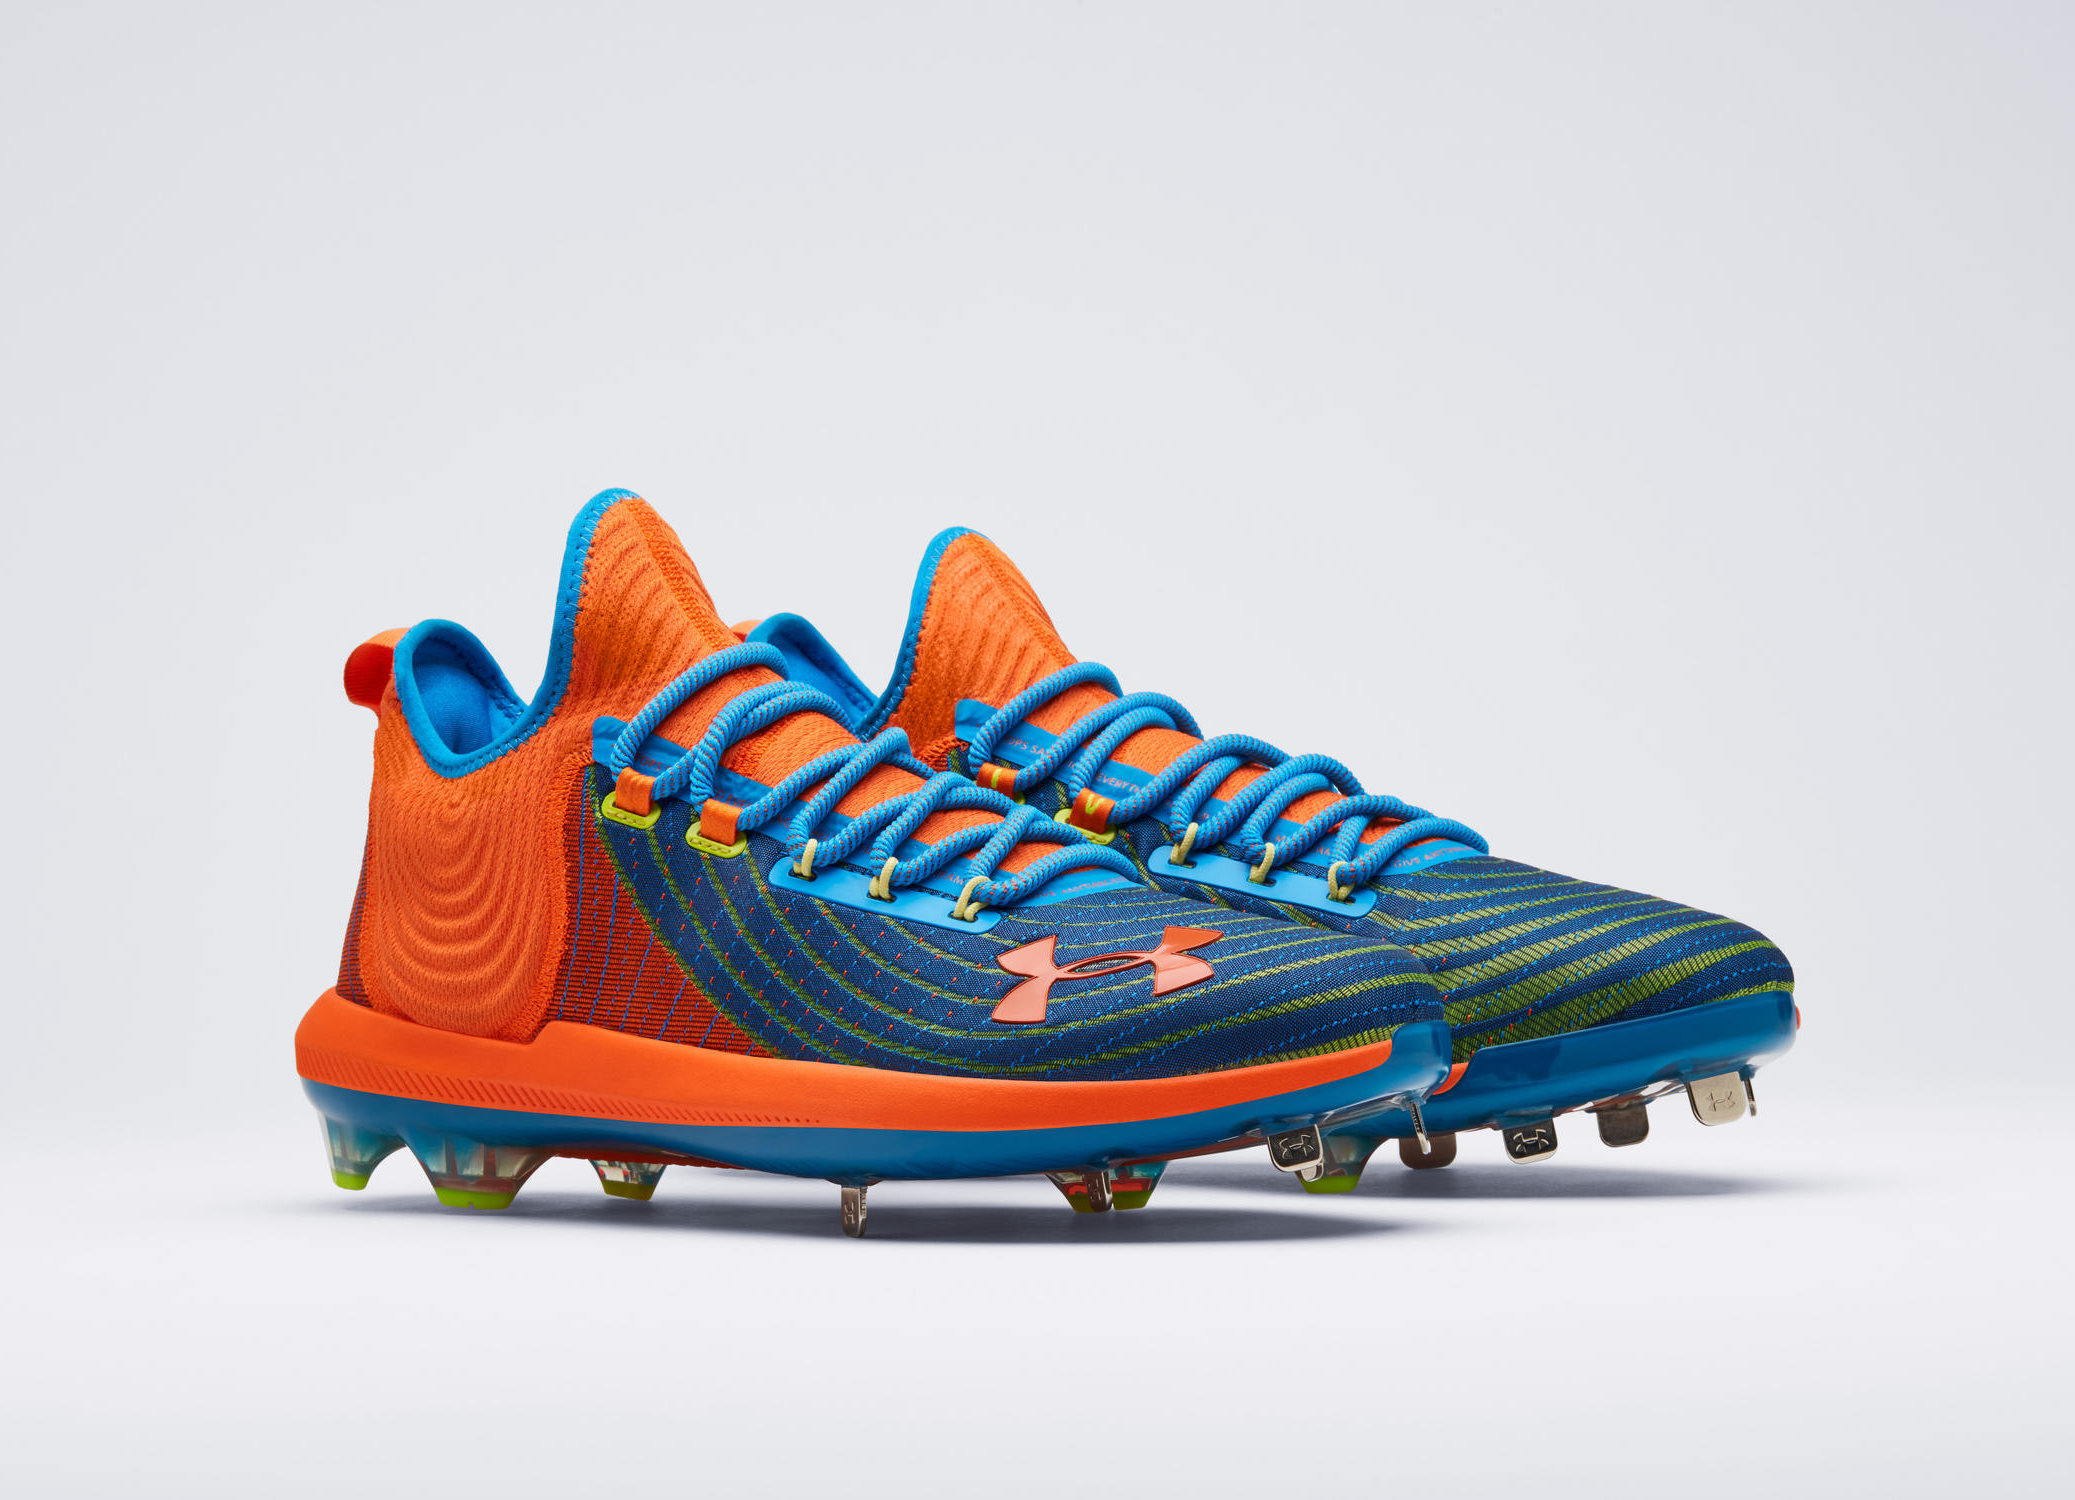 """8e9d9611bf2b Bryce Harper's newest iteration of the Harper cleat line, the Harper 4,  will take on another wild colorway after its Memorial Day """"Razzle Dazzle""""  debut."""